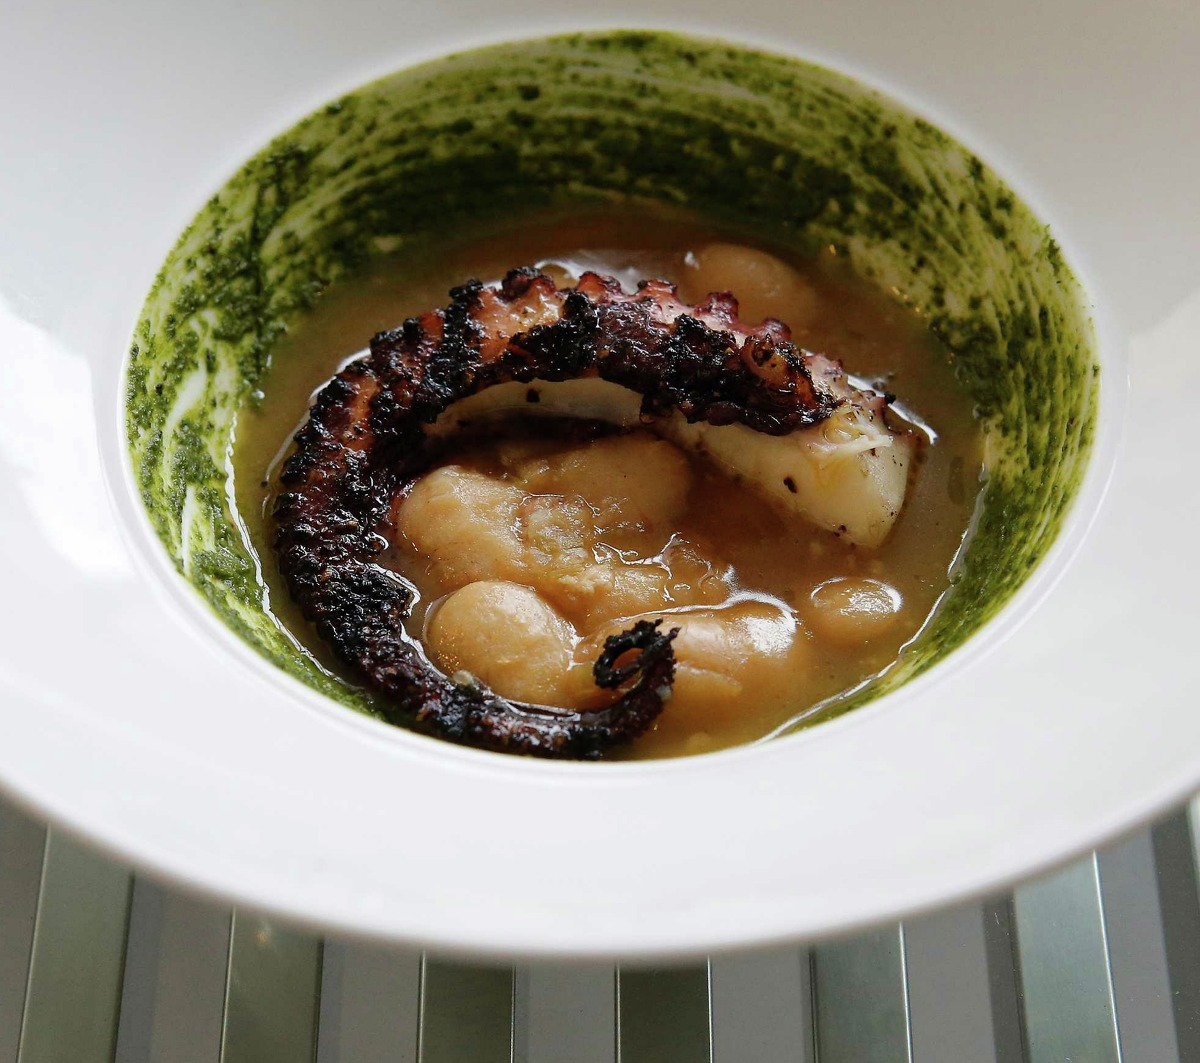 The tender chargrilled Spanish octopus is served with braised corona beans and a basil pistou.